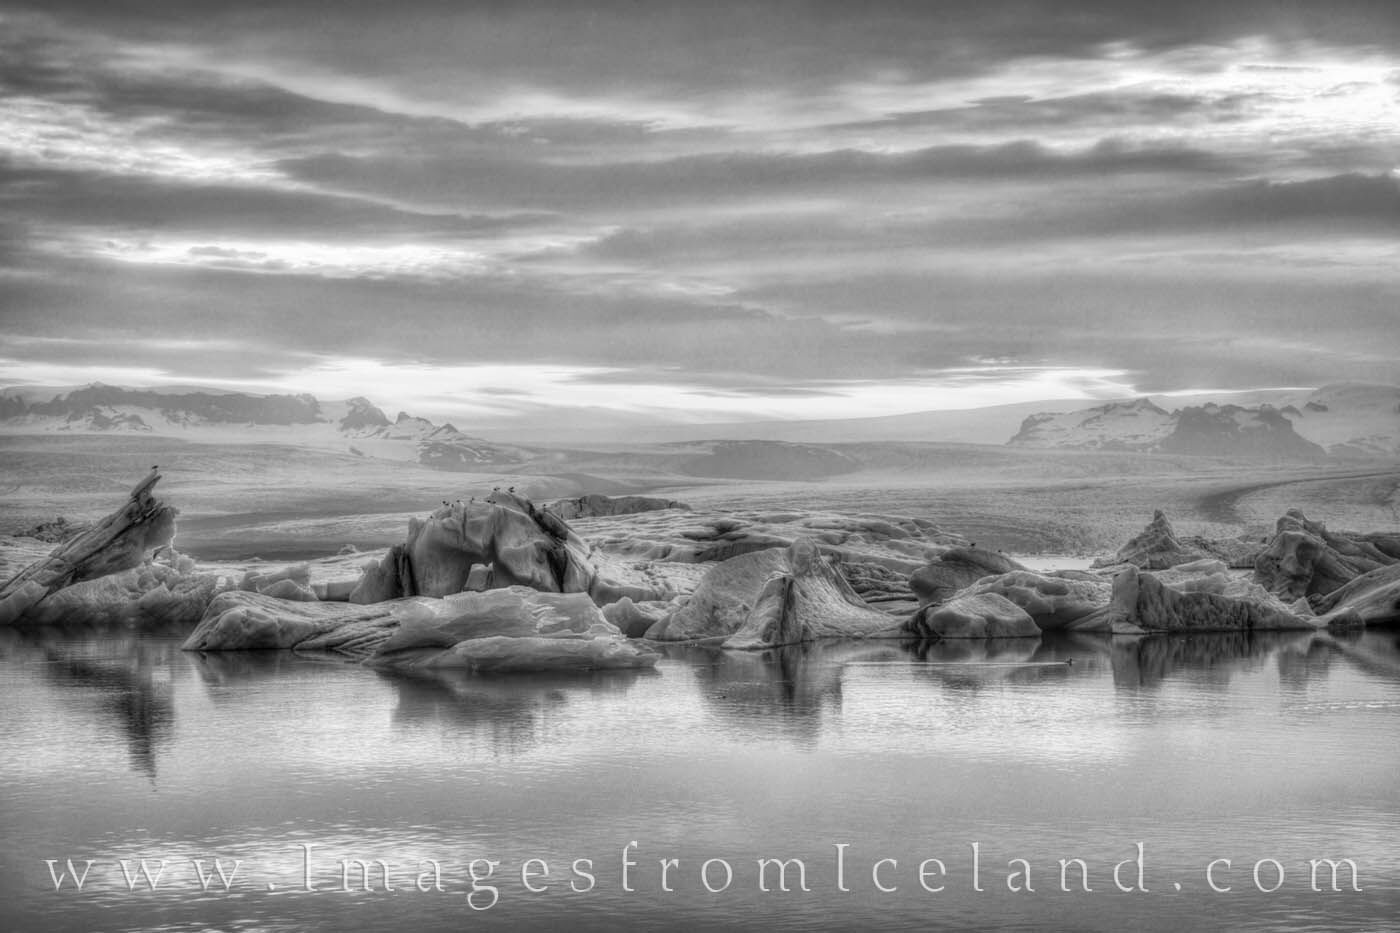 Taken at around midnight, this photograph shows Jökulsárlón Lagoon in black and white. Gulls rest on the floating blocks of...